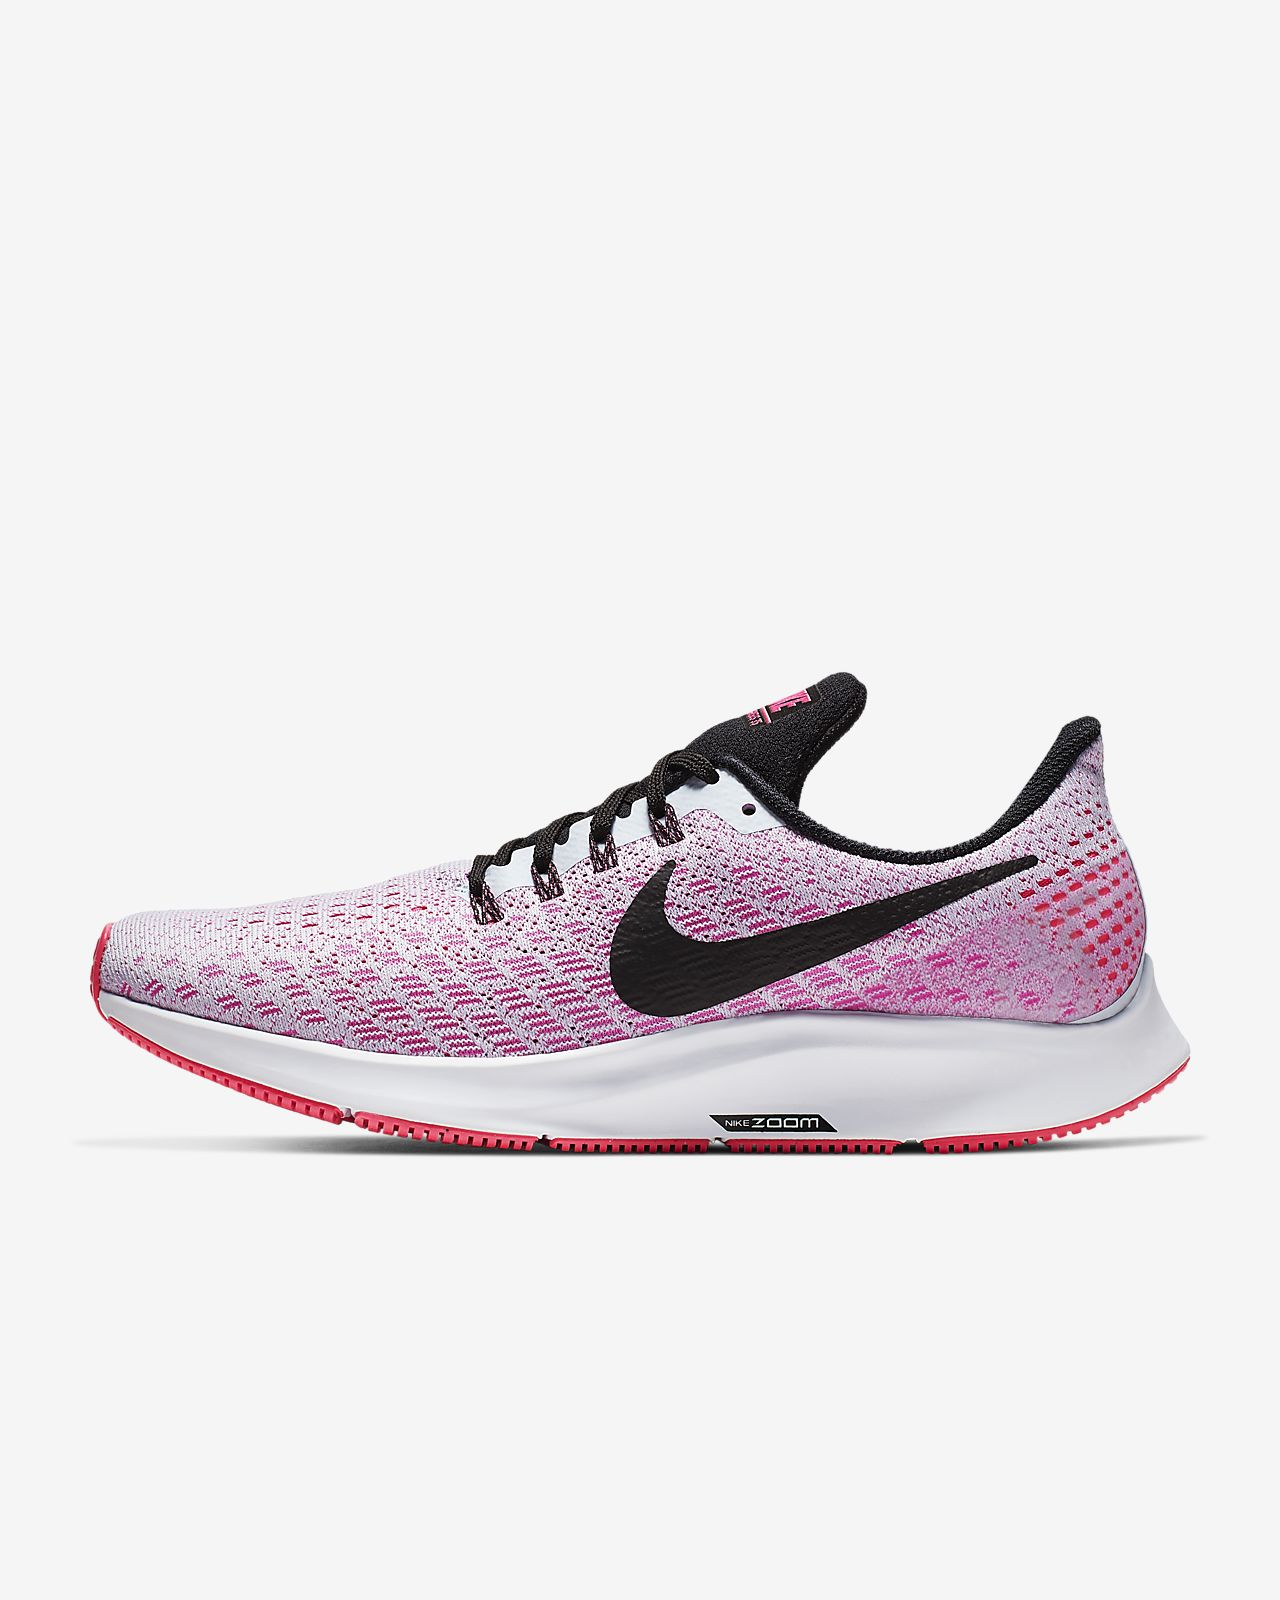 6694c93a971a Nike Air Zoom Pegasus 35 Women s Running Shoe. Nike.com CA